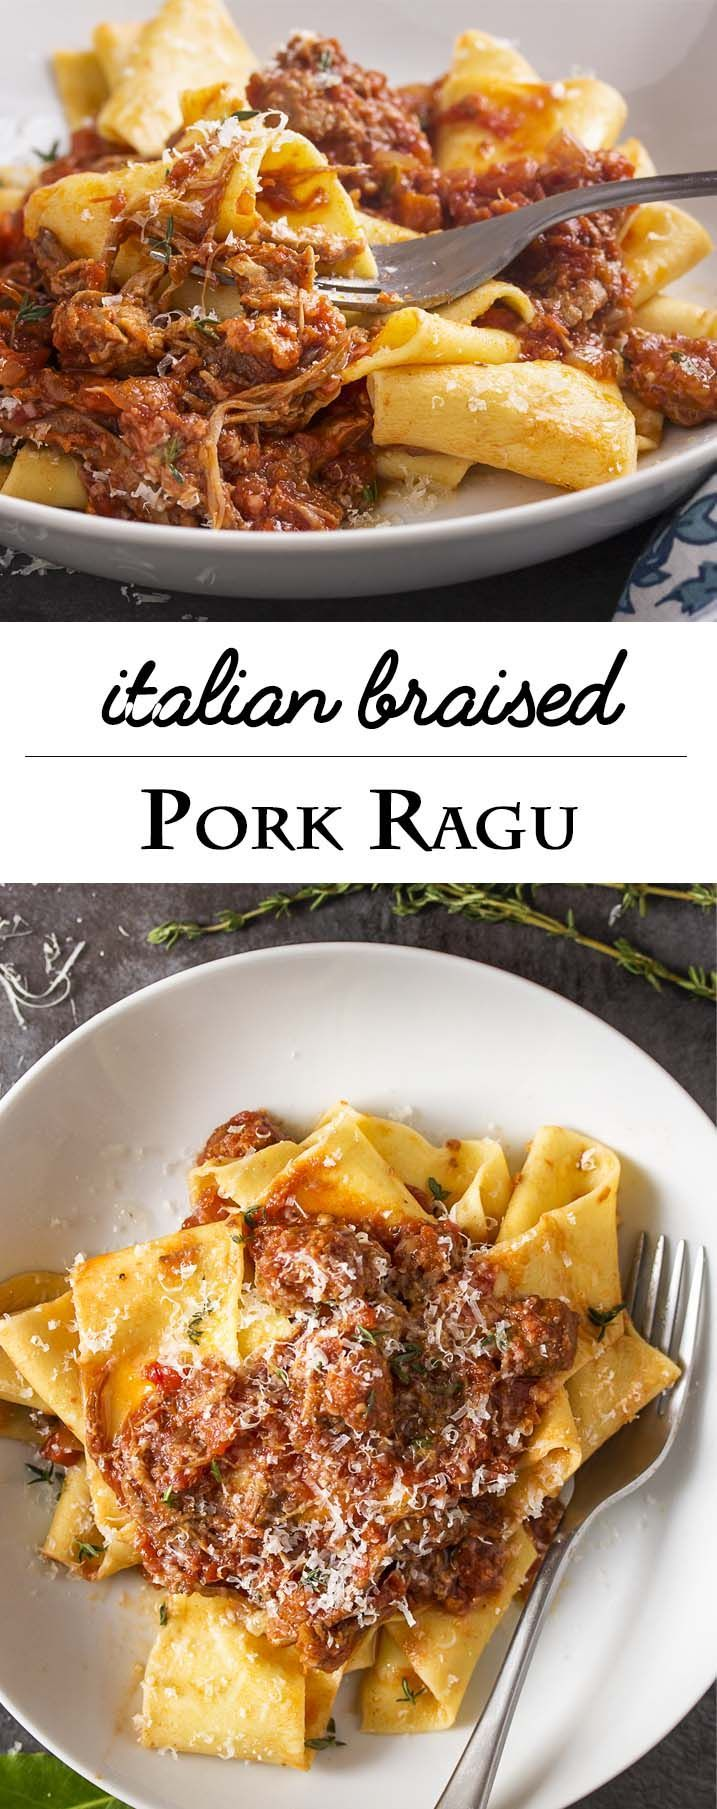 Italian comfort food of tomato, braised sausage, and pork shoulder ragu simmering on the stove is the perfect way to spend a chilly day. This pork ragu is easily doubled and freezes well. | http://justalittlebitofbacon.com